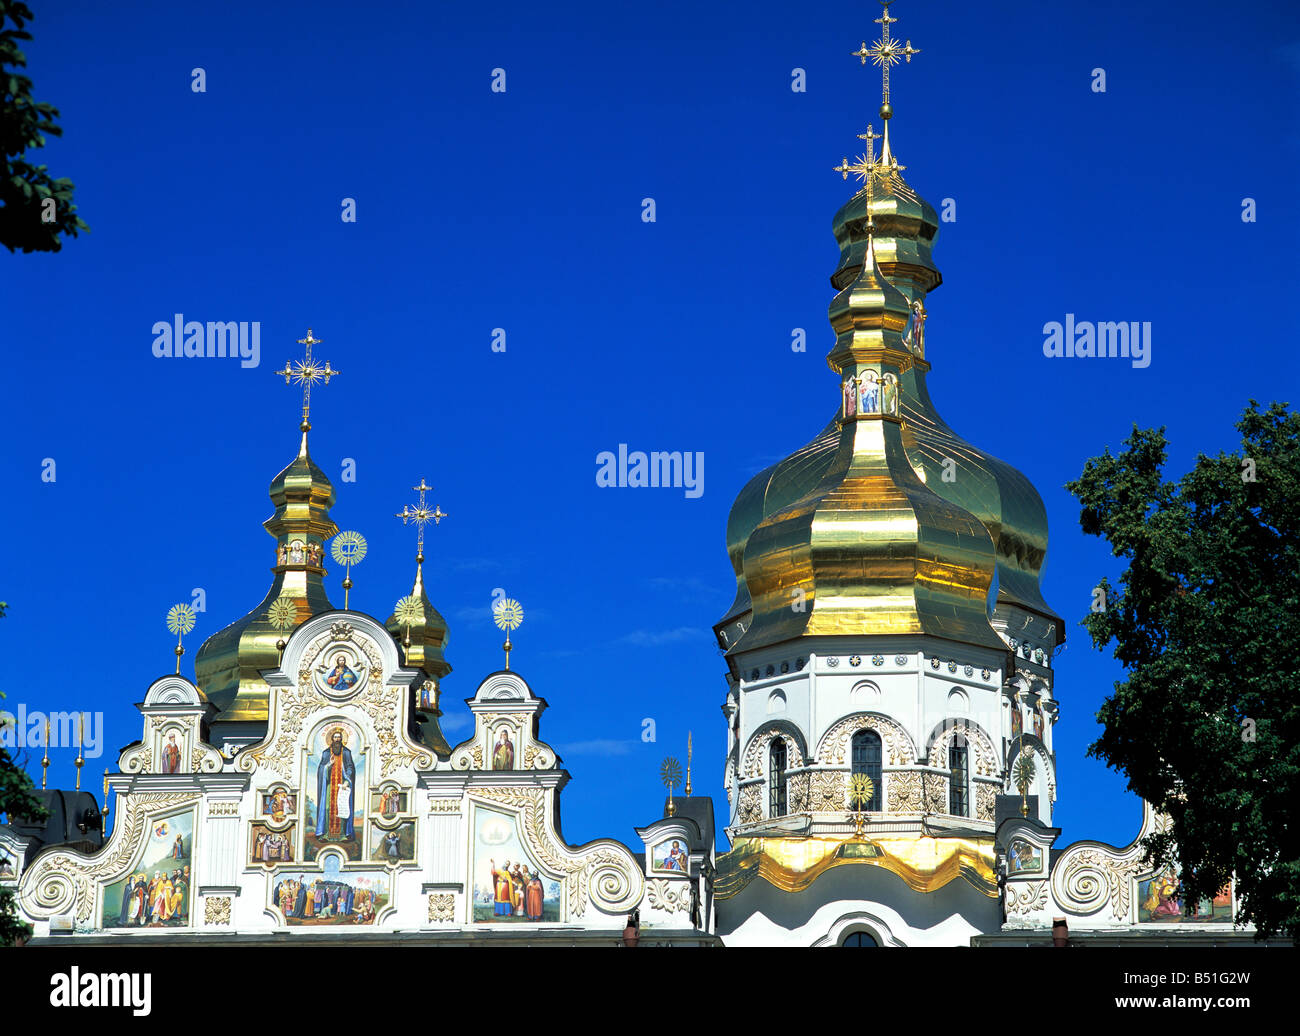 Church of the Assumption, Lavra, Kiev, Ukraine - Stock Image